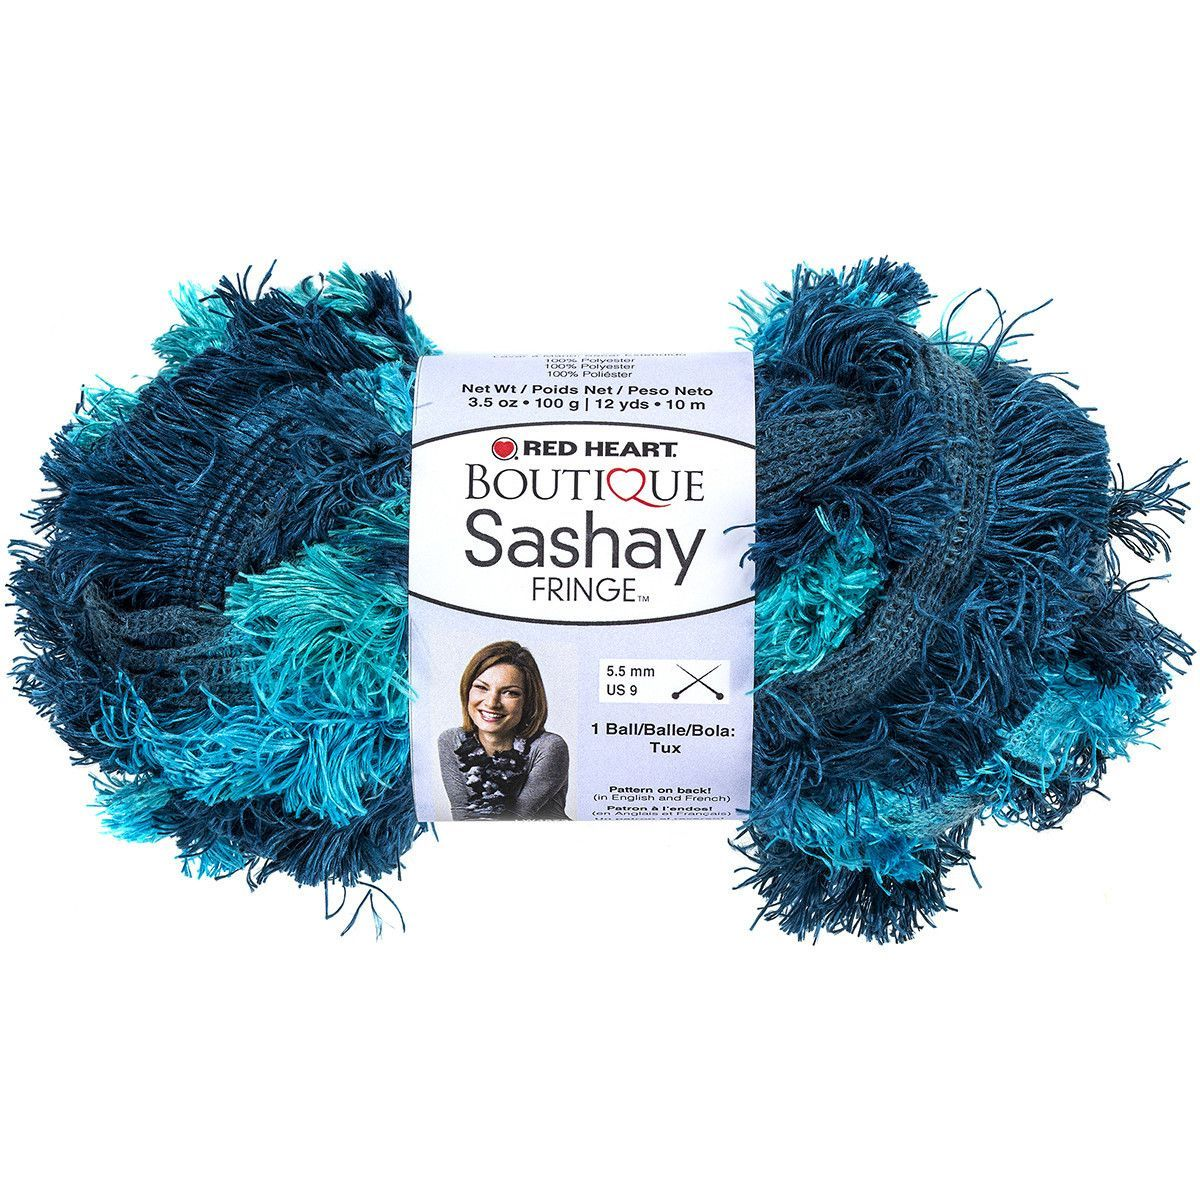 Red heart boutique sashay fringe yarn surf products pinterest